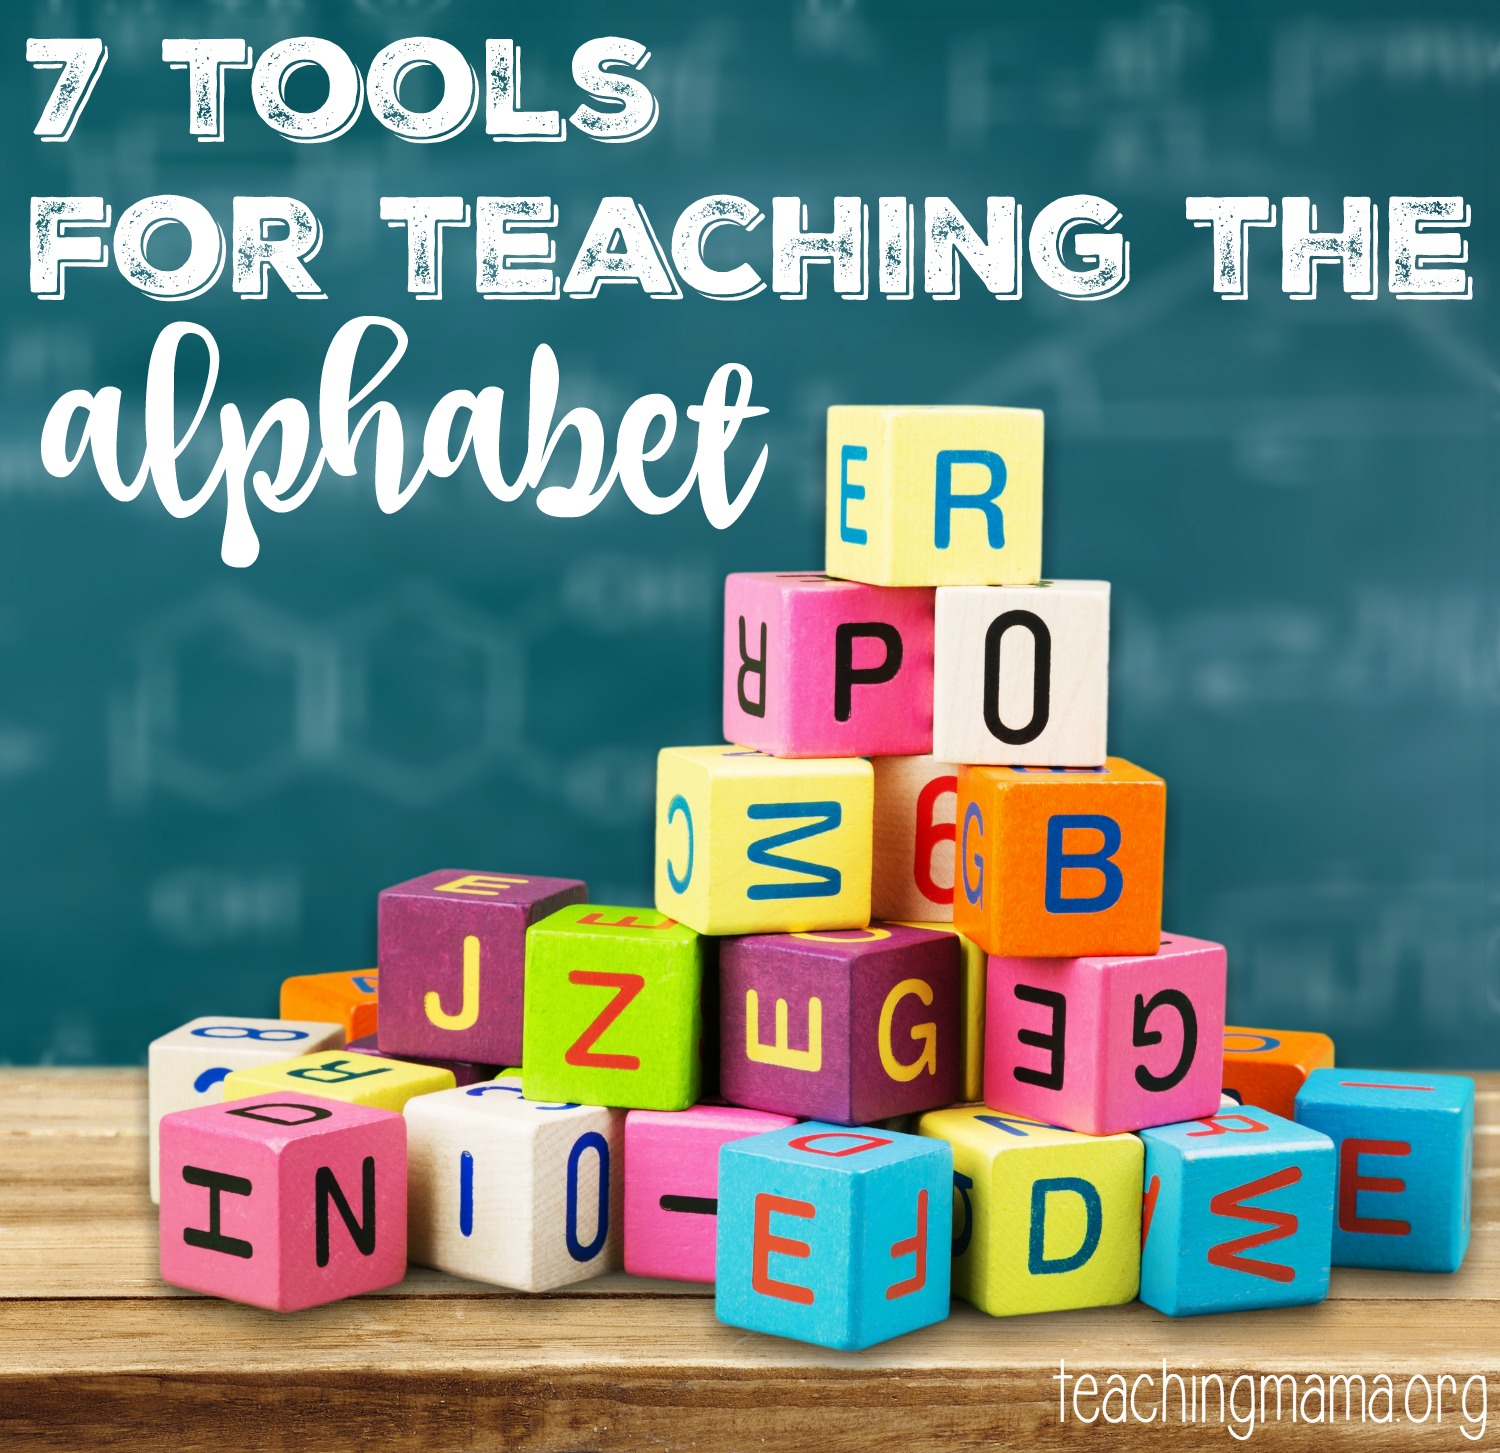 Tools for Teaching the Alphabet